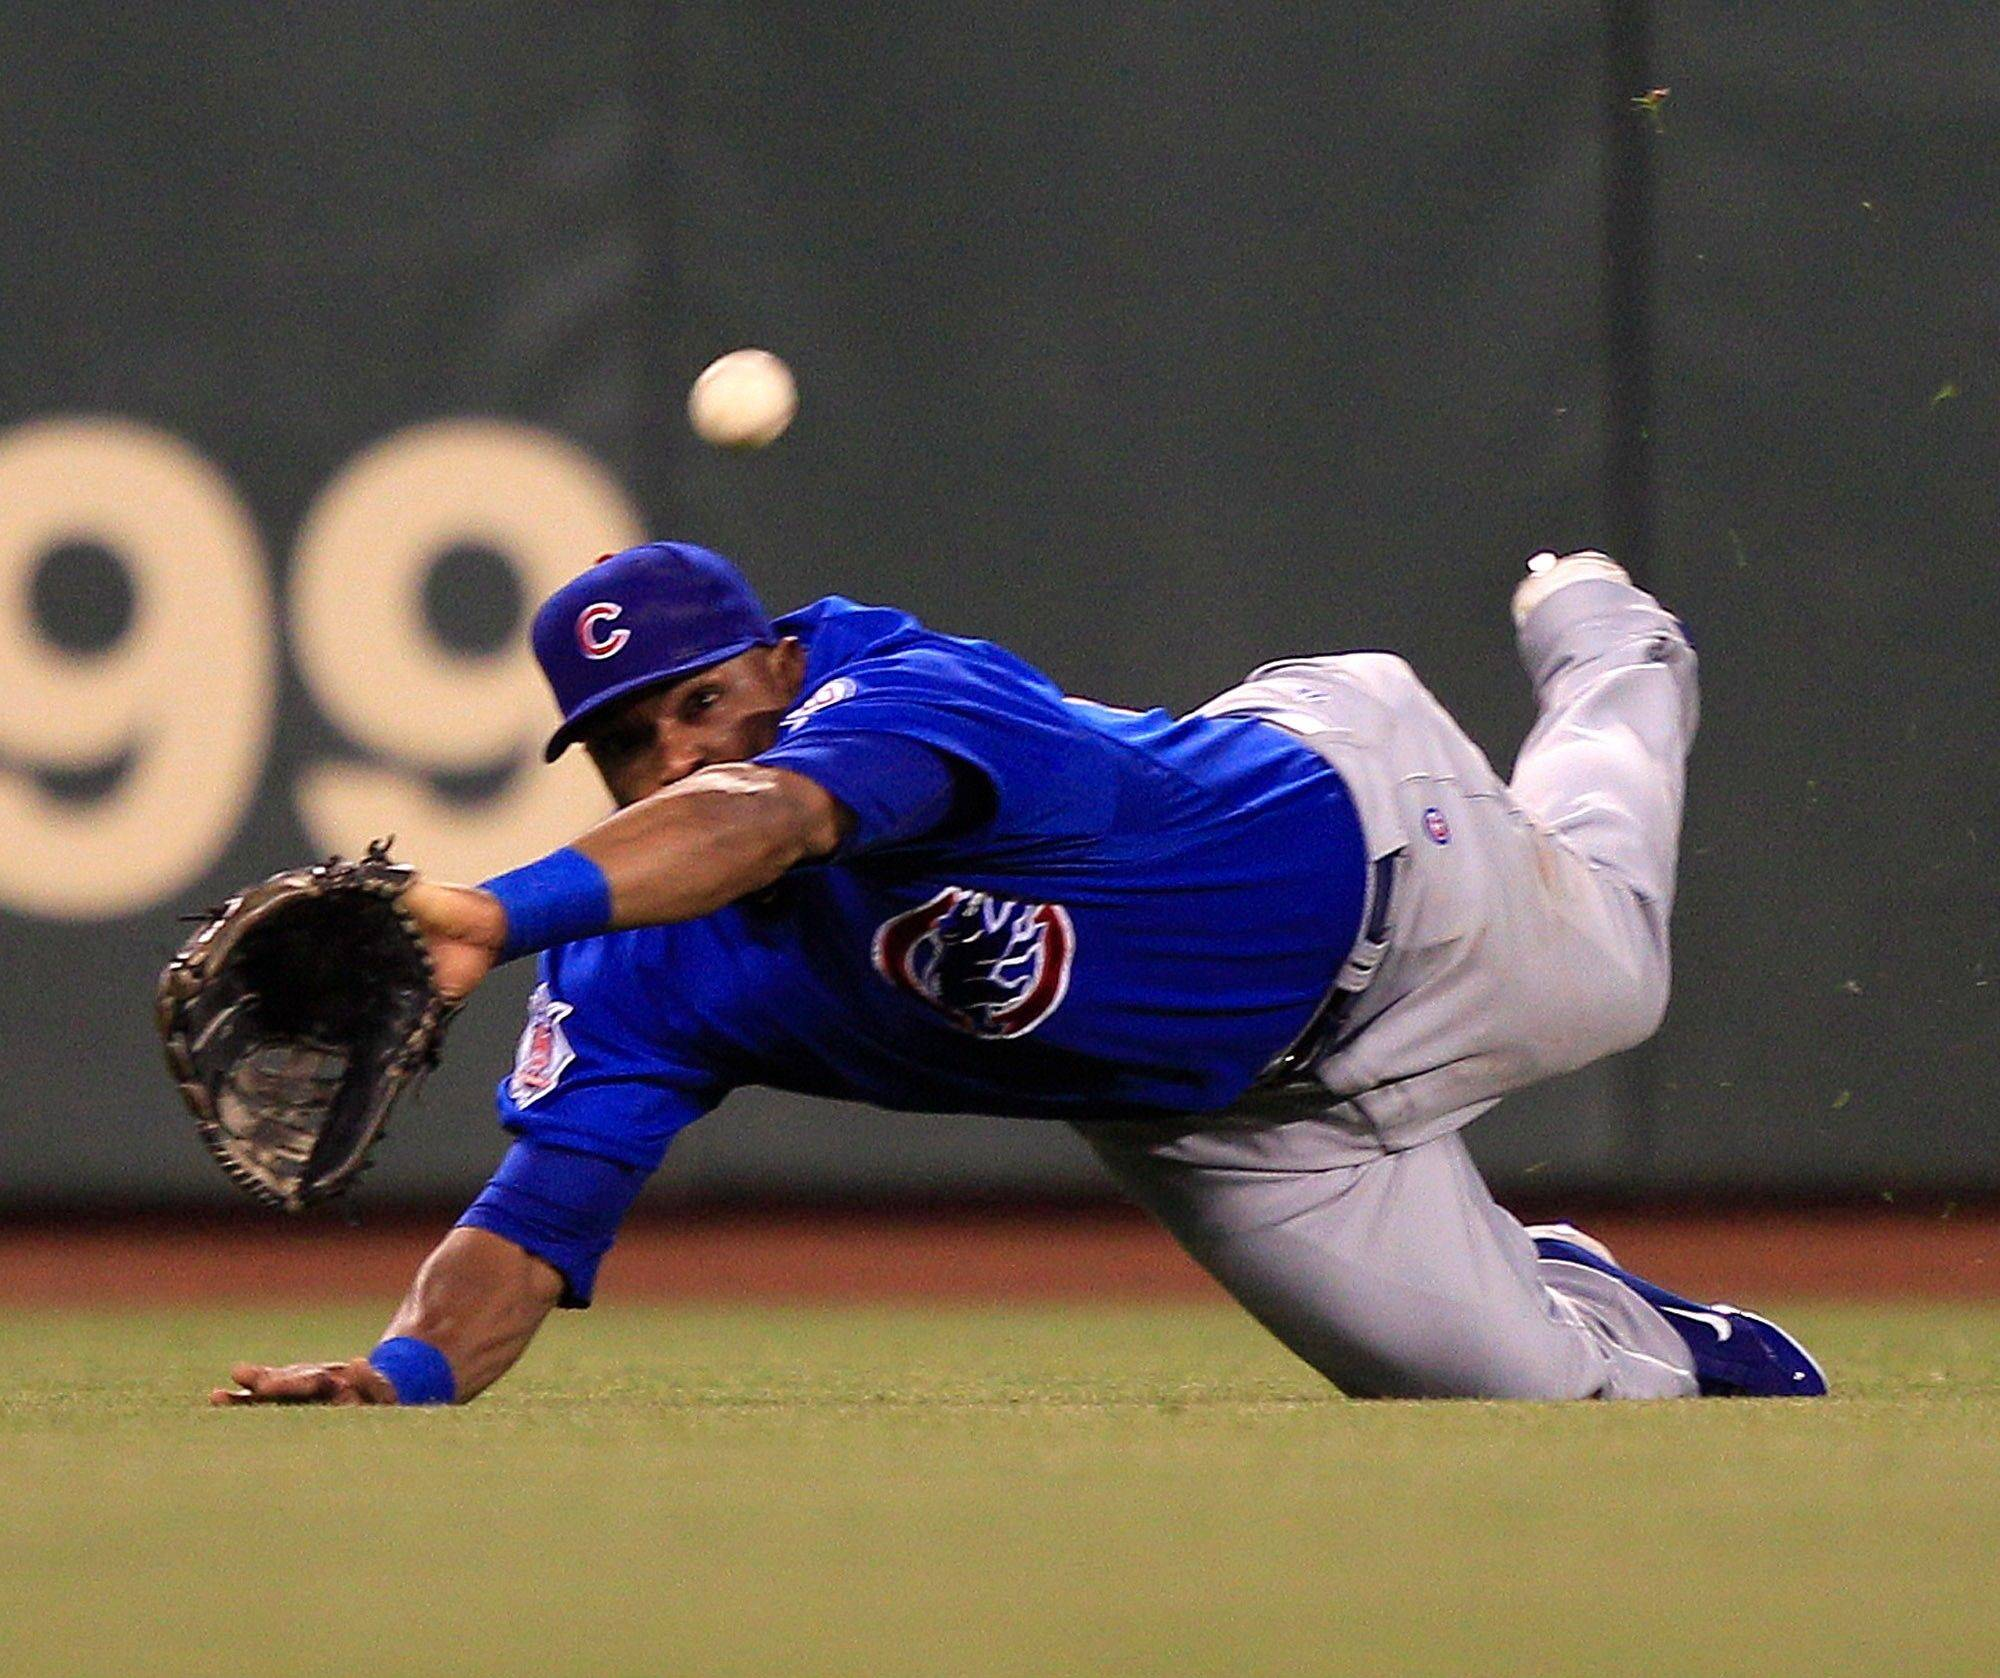 Cubs center fielder Marlon Byrd makes a diving attempt at a ball hit by the Giants� Andres Torres in the third inning Monday. Torres was safe with a double.